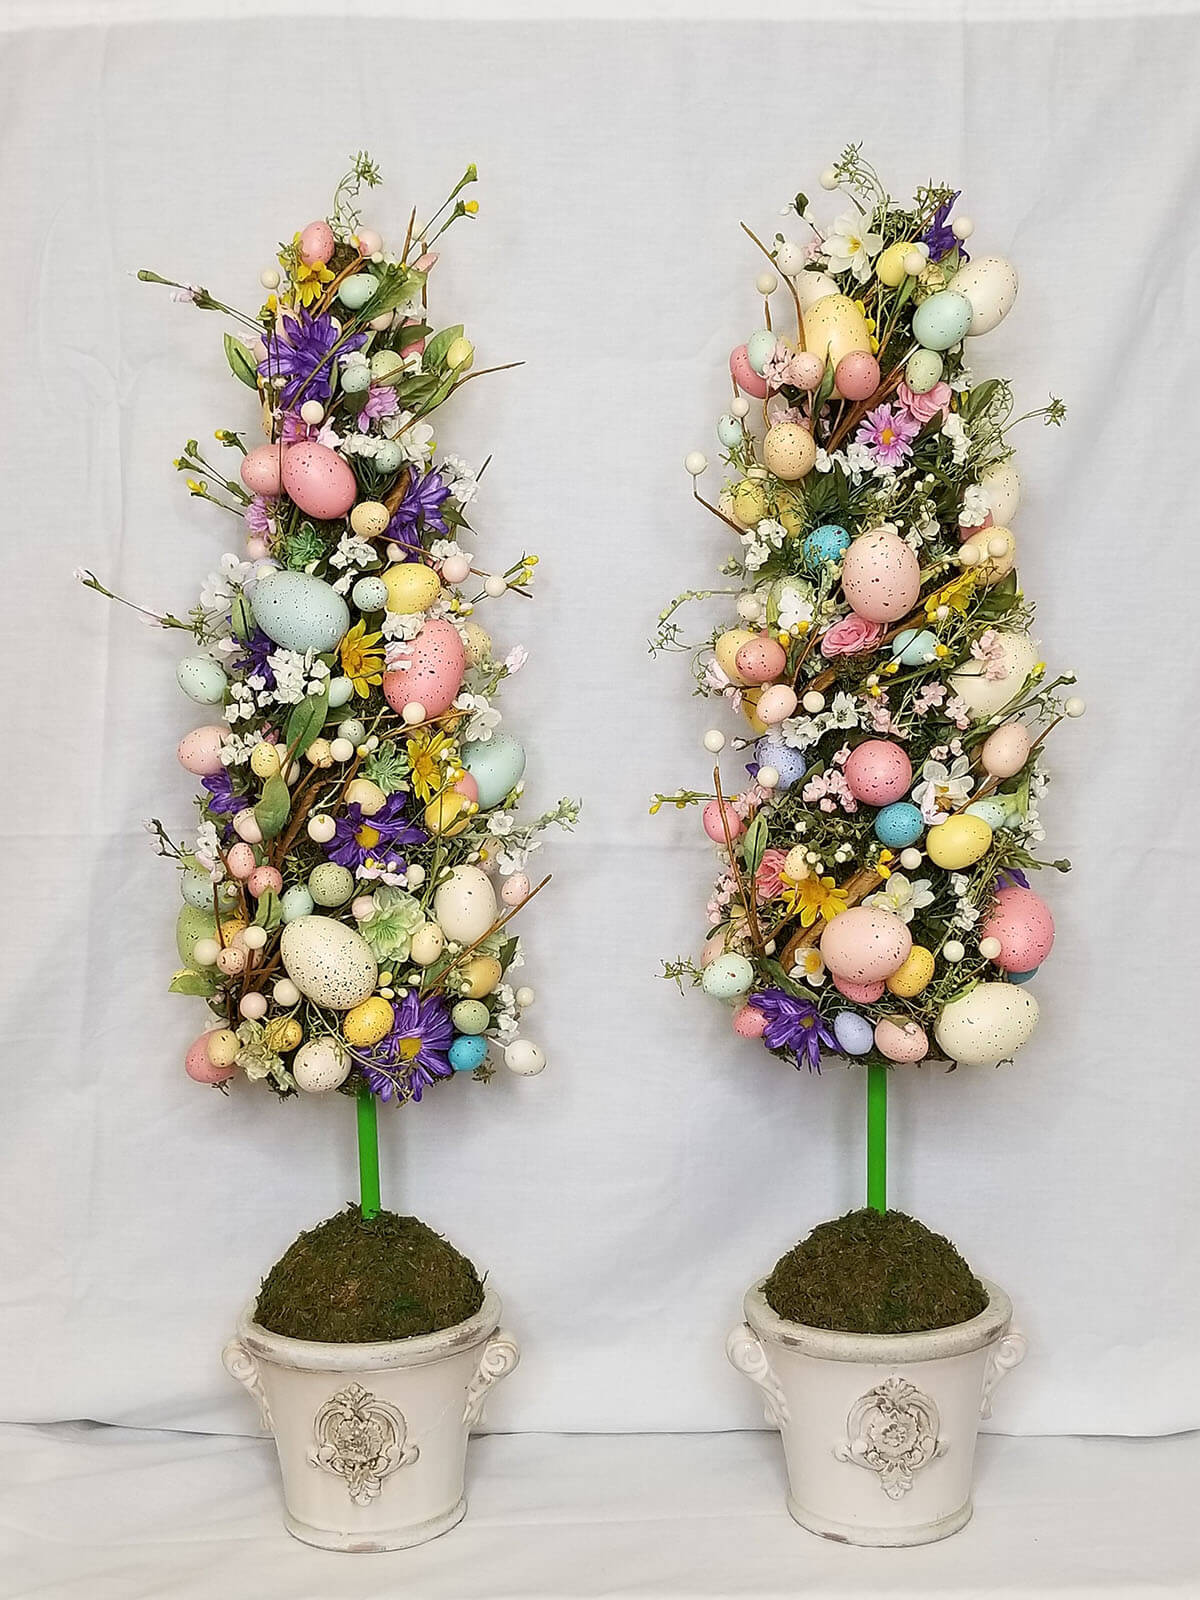 Hand-Crafted Spring Easter Egg Topiary